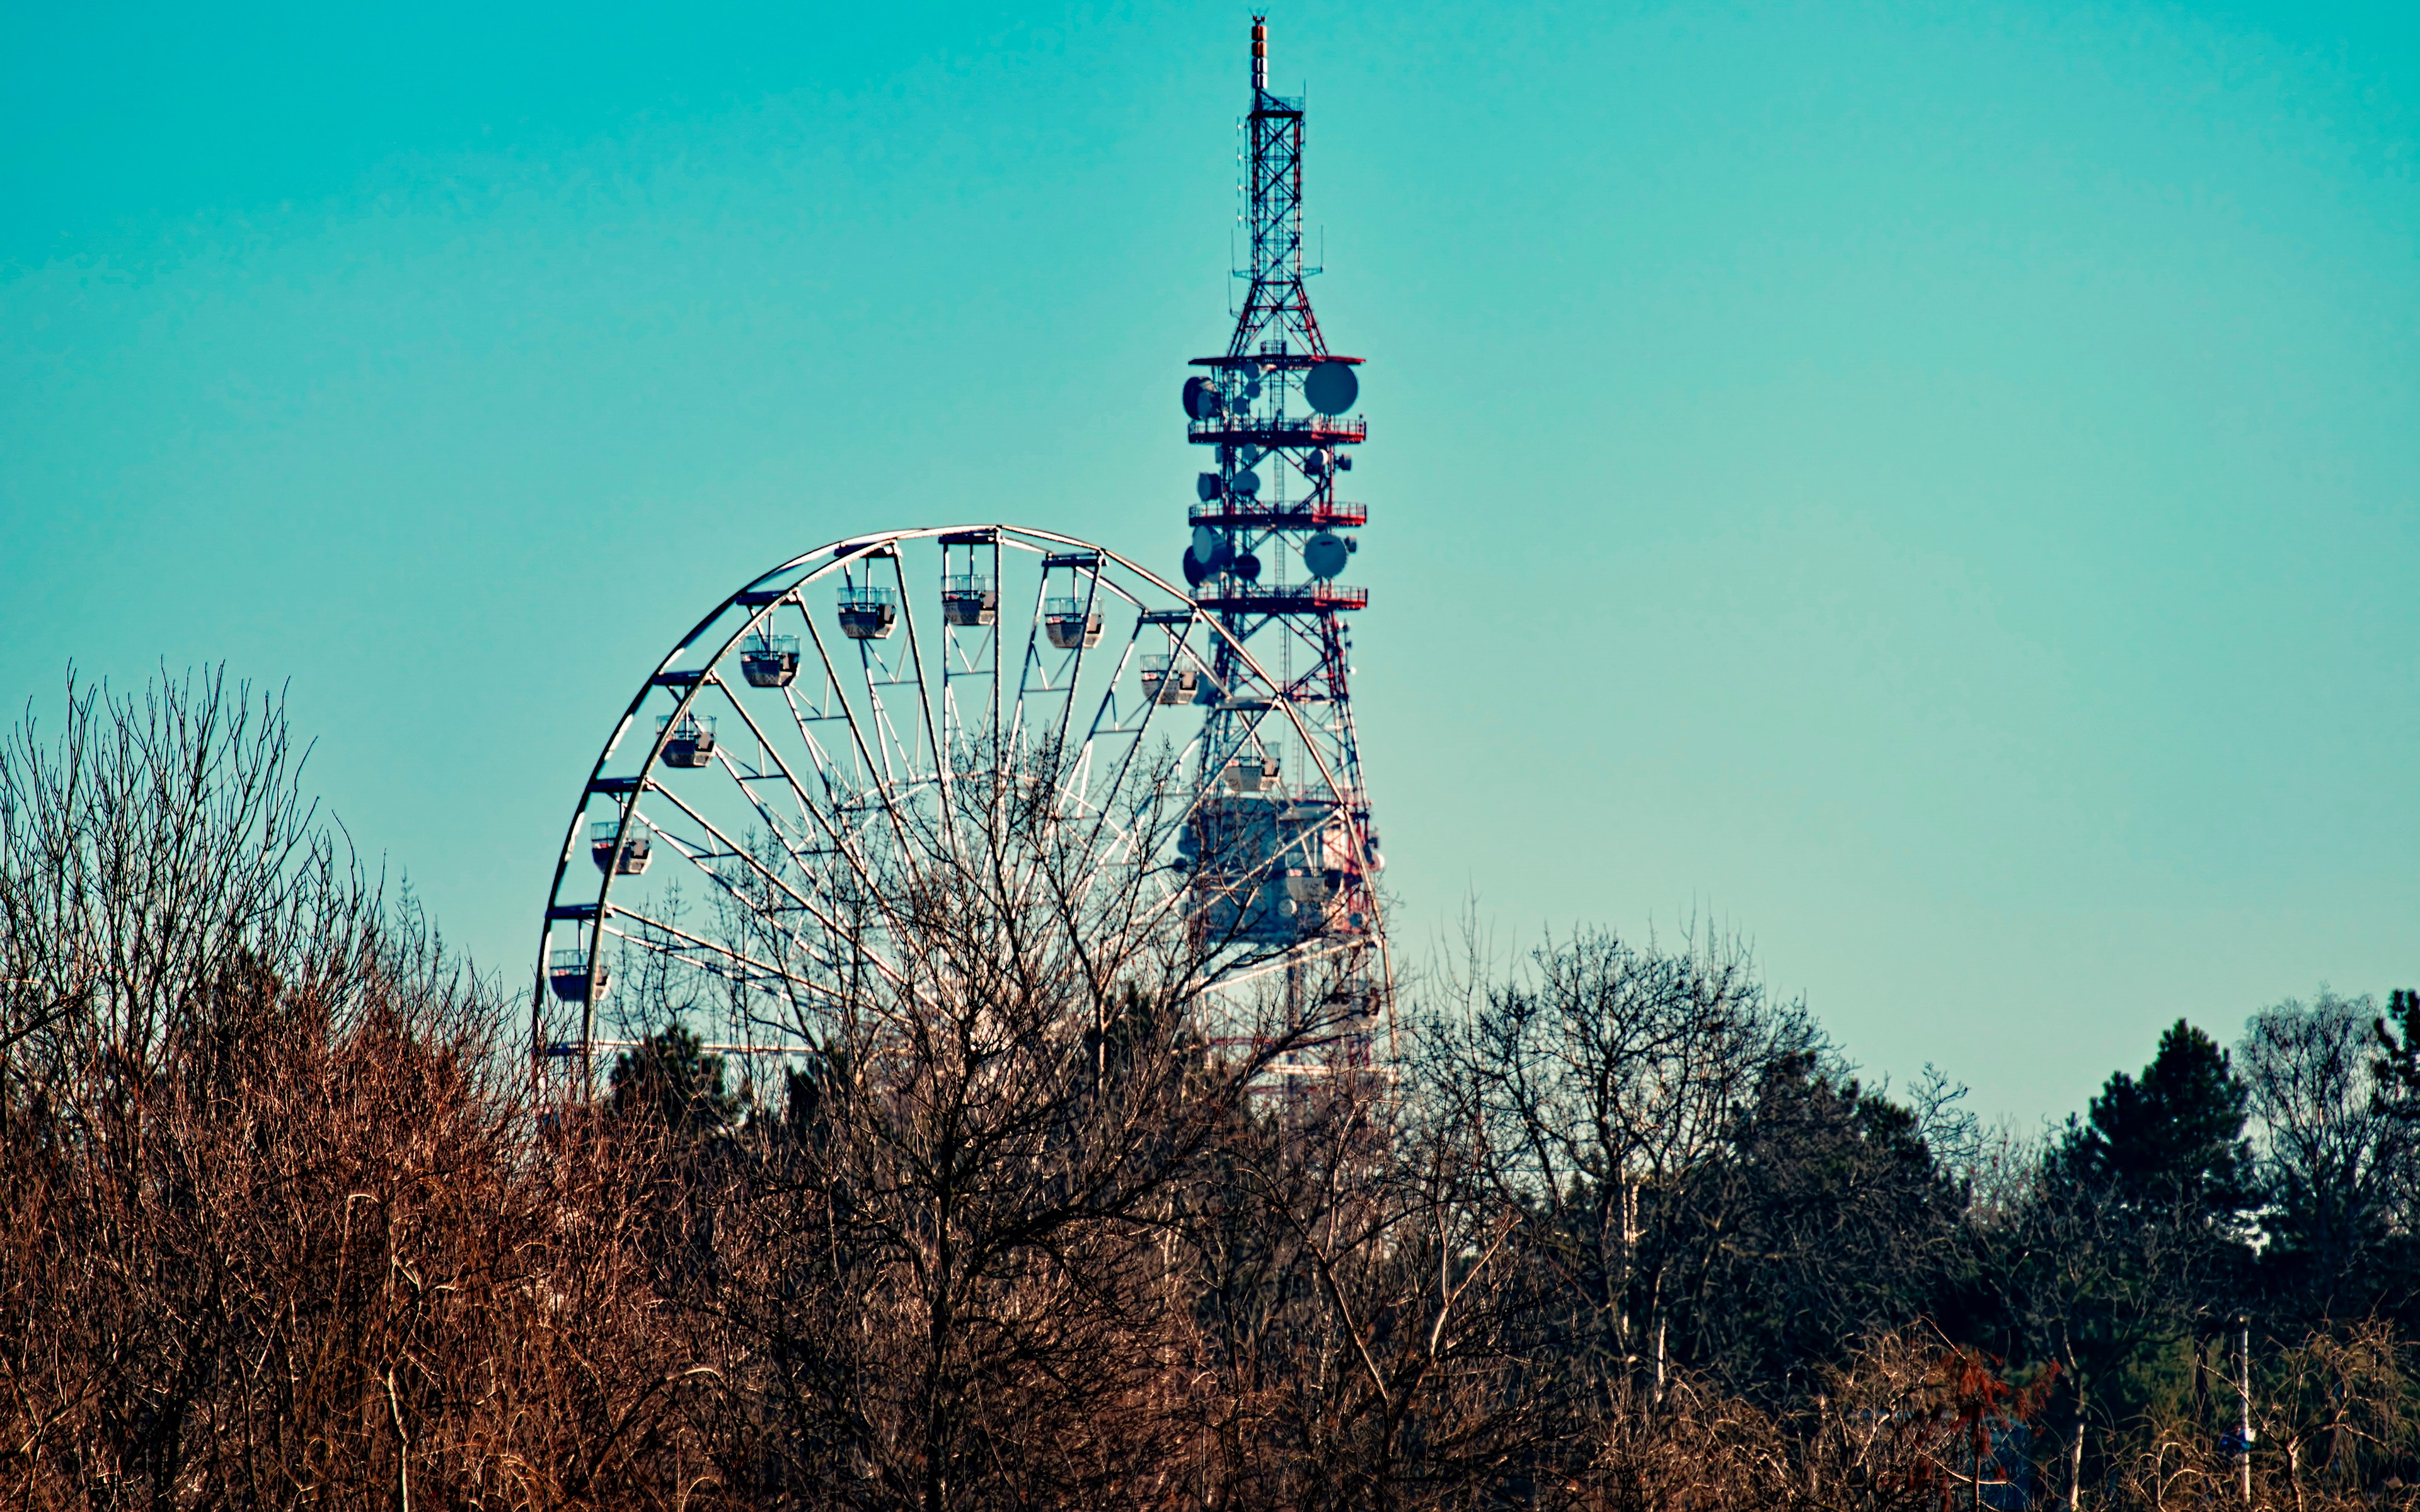 Photo of a Ferris Wheel Beside Tower, Blue sky, Power, Trees, Travel, HQ Photo